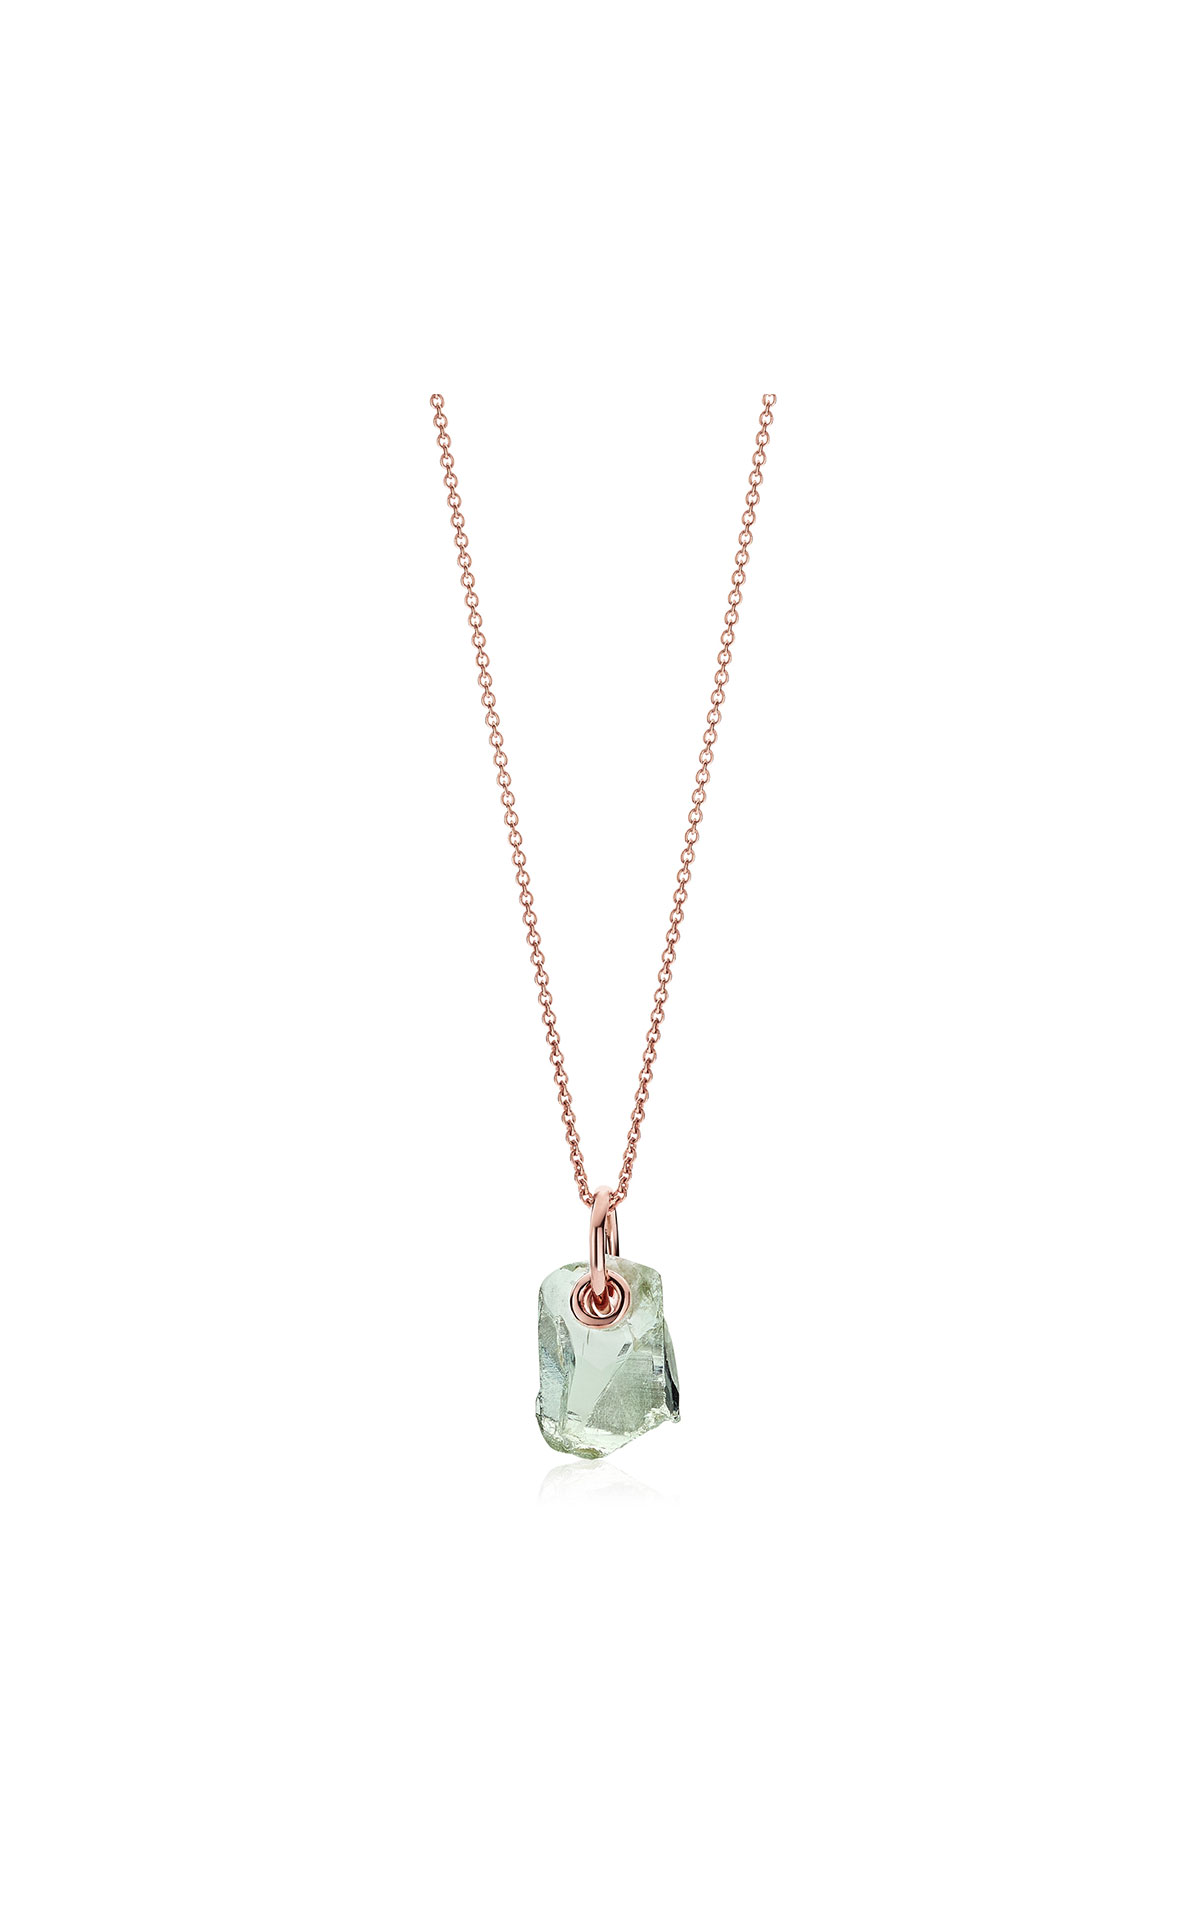 Monica Vinader Rose gold vermeil gemstone pendant adjustable necklace - green amethyst from Bicester Village